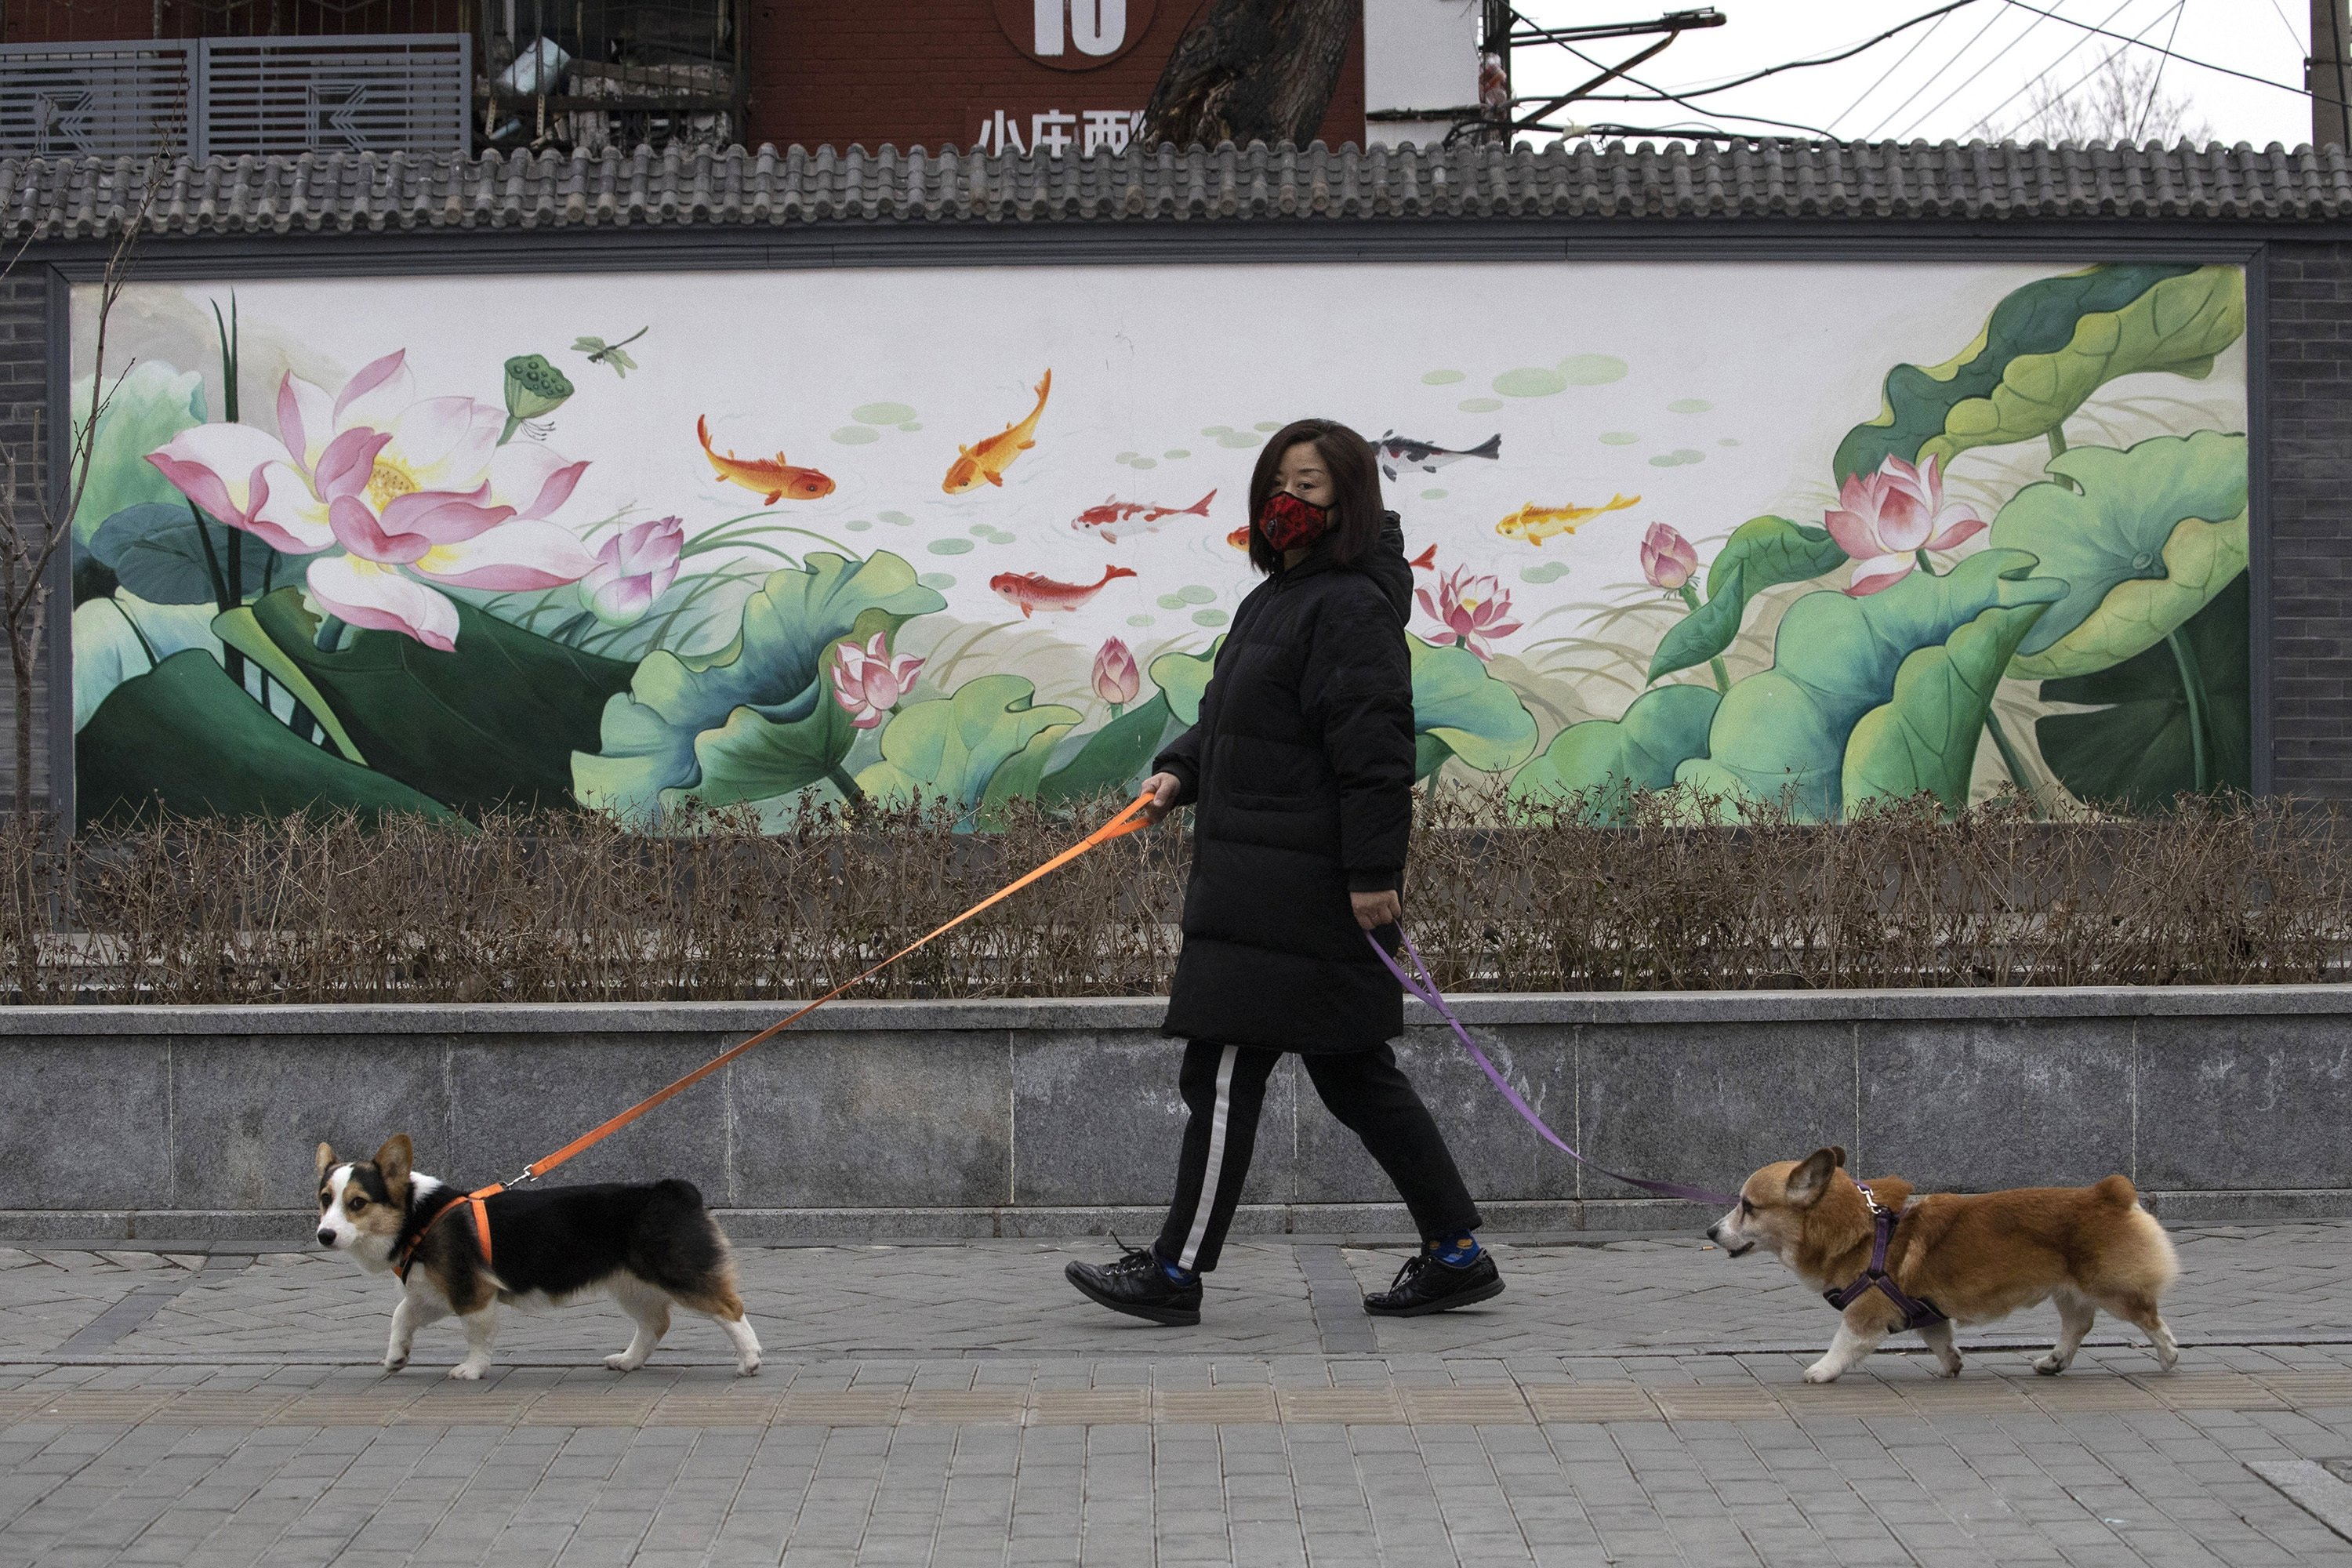 A resident wearing a mask walks her dogs in Beijing, China, Feb. 25, 2020. (AP Photo)